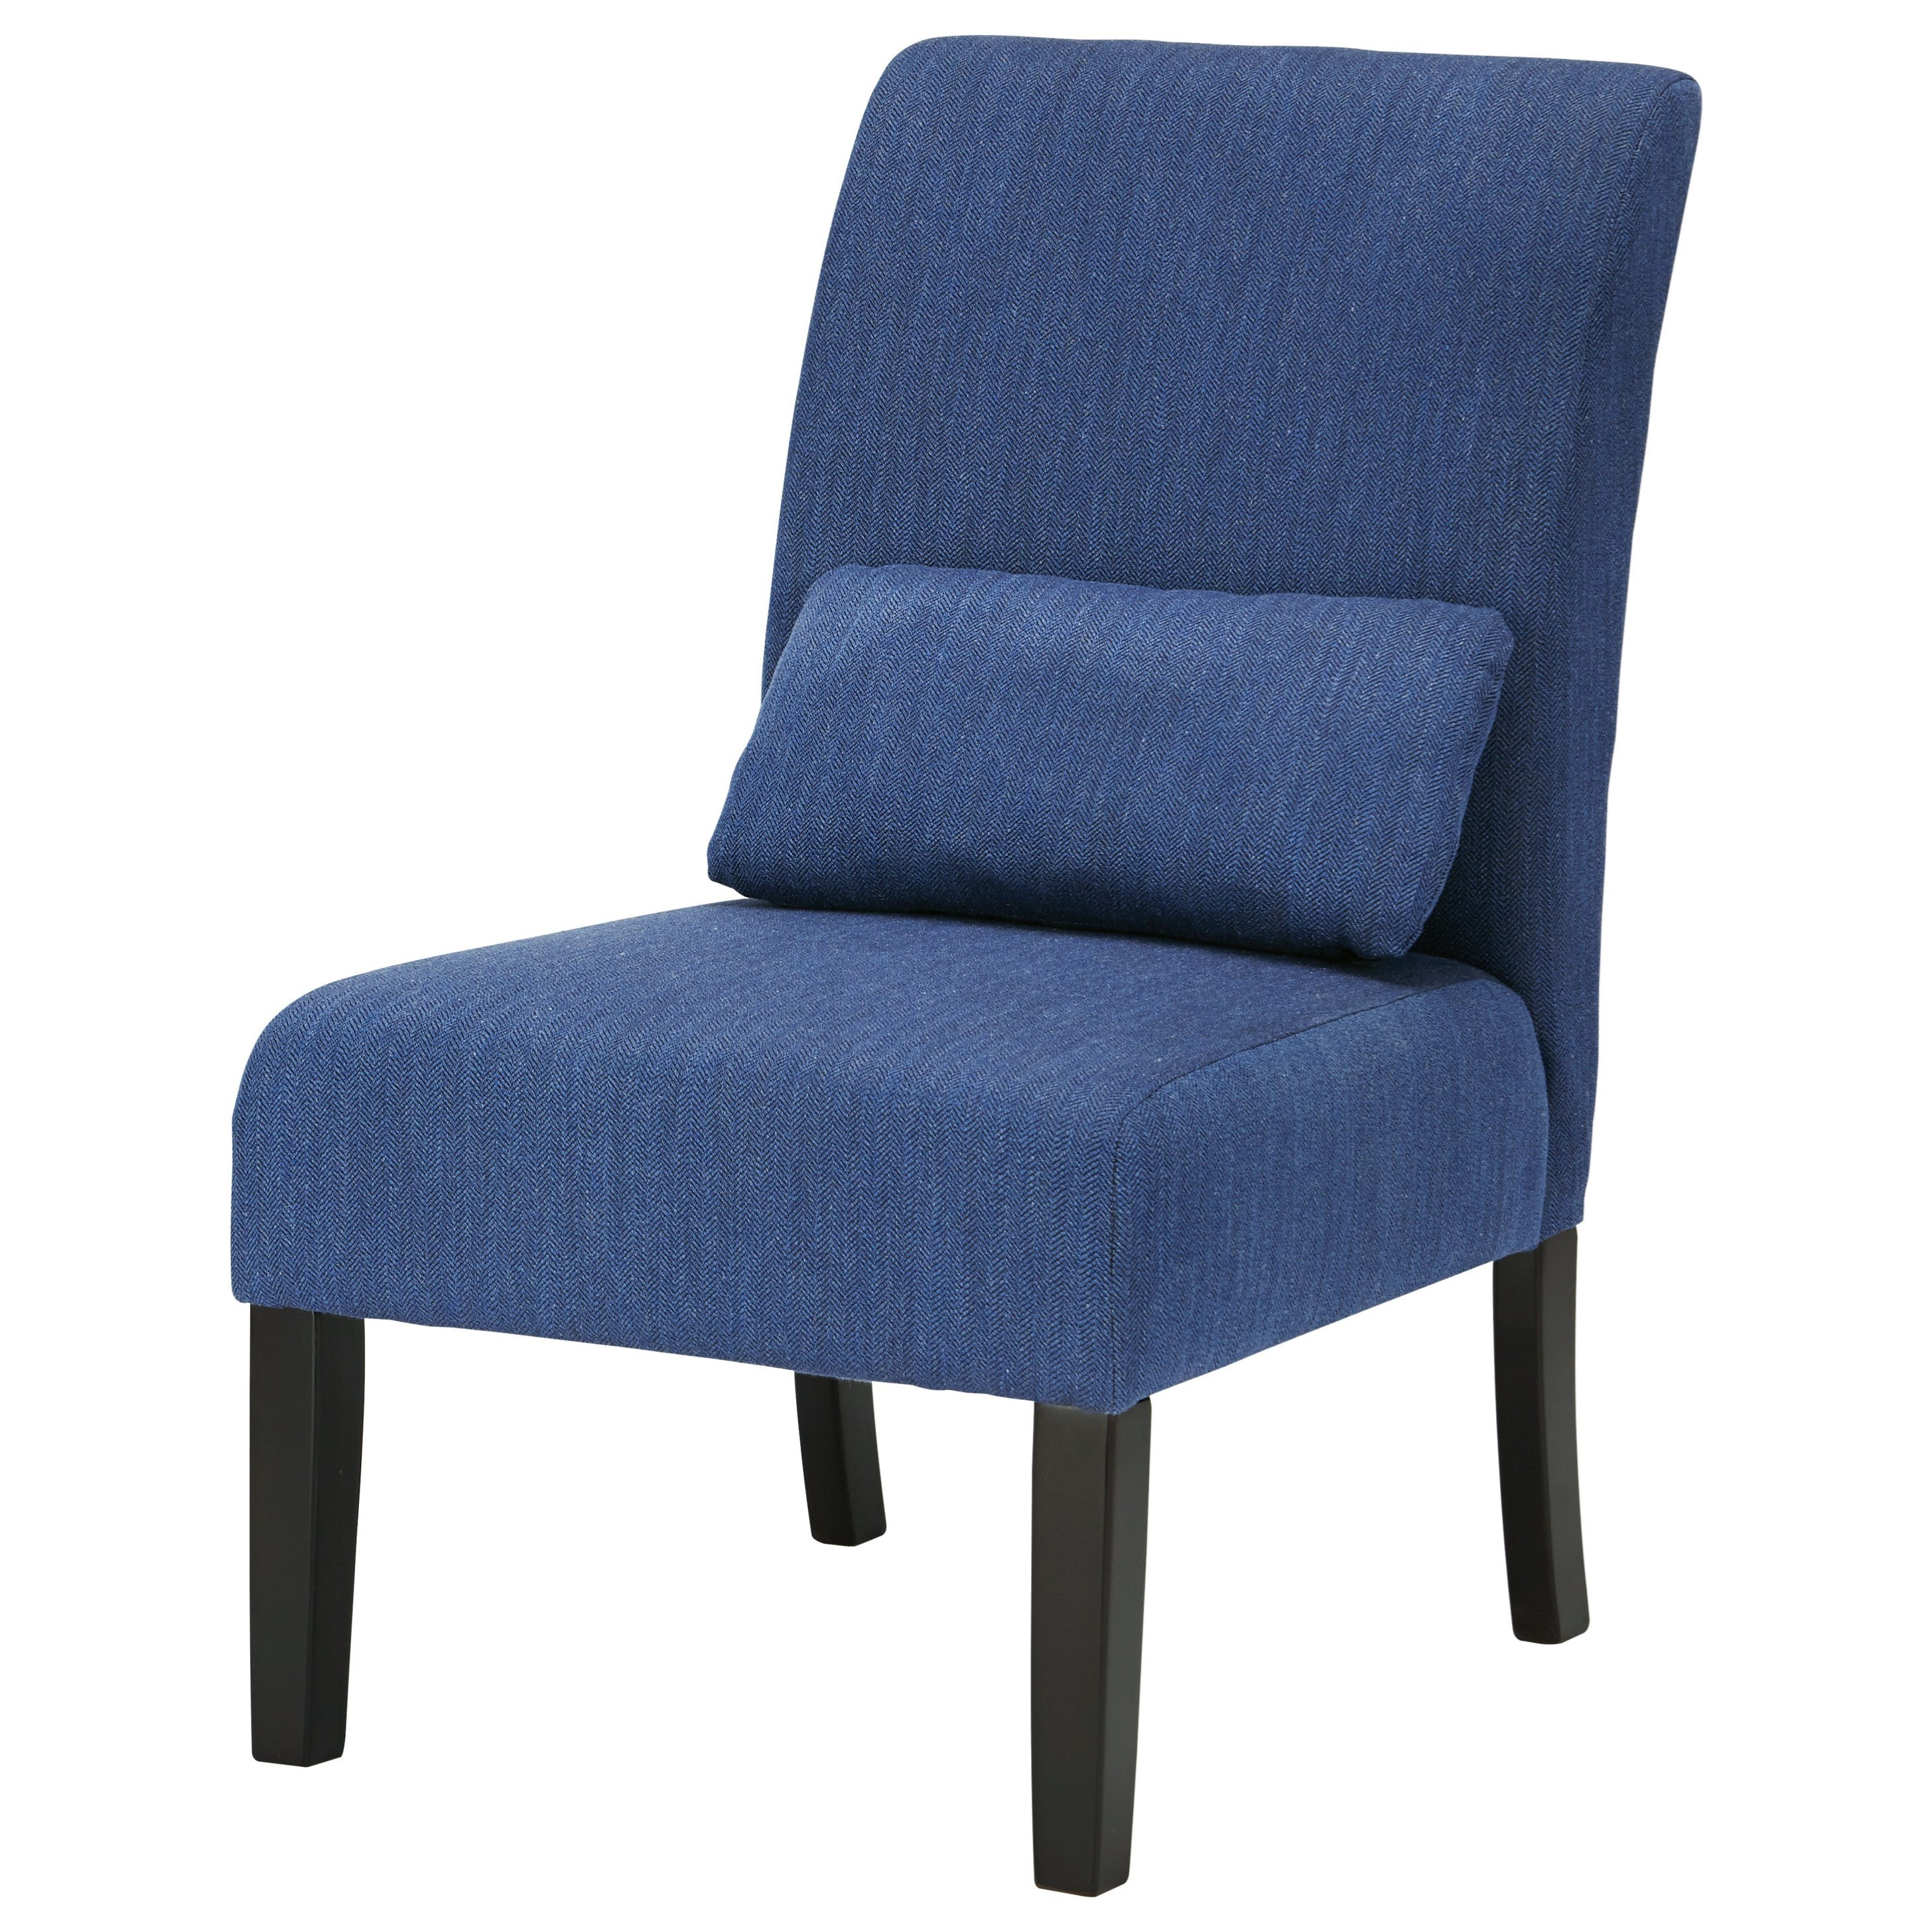 Signature Design by Ashley Sesto Accent Chair - Item Number: A3000071